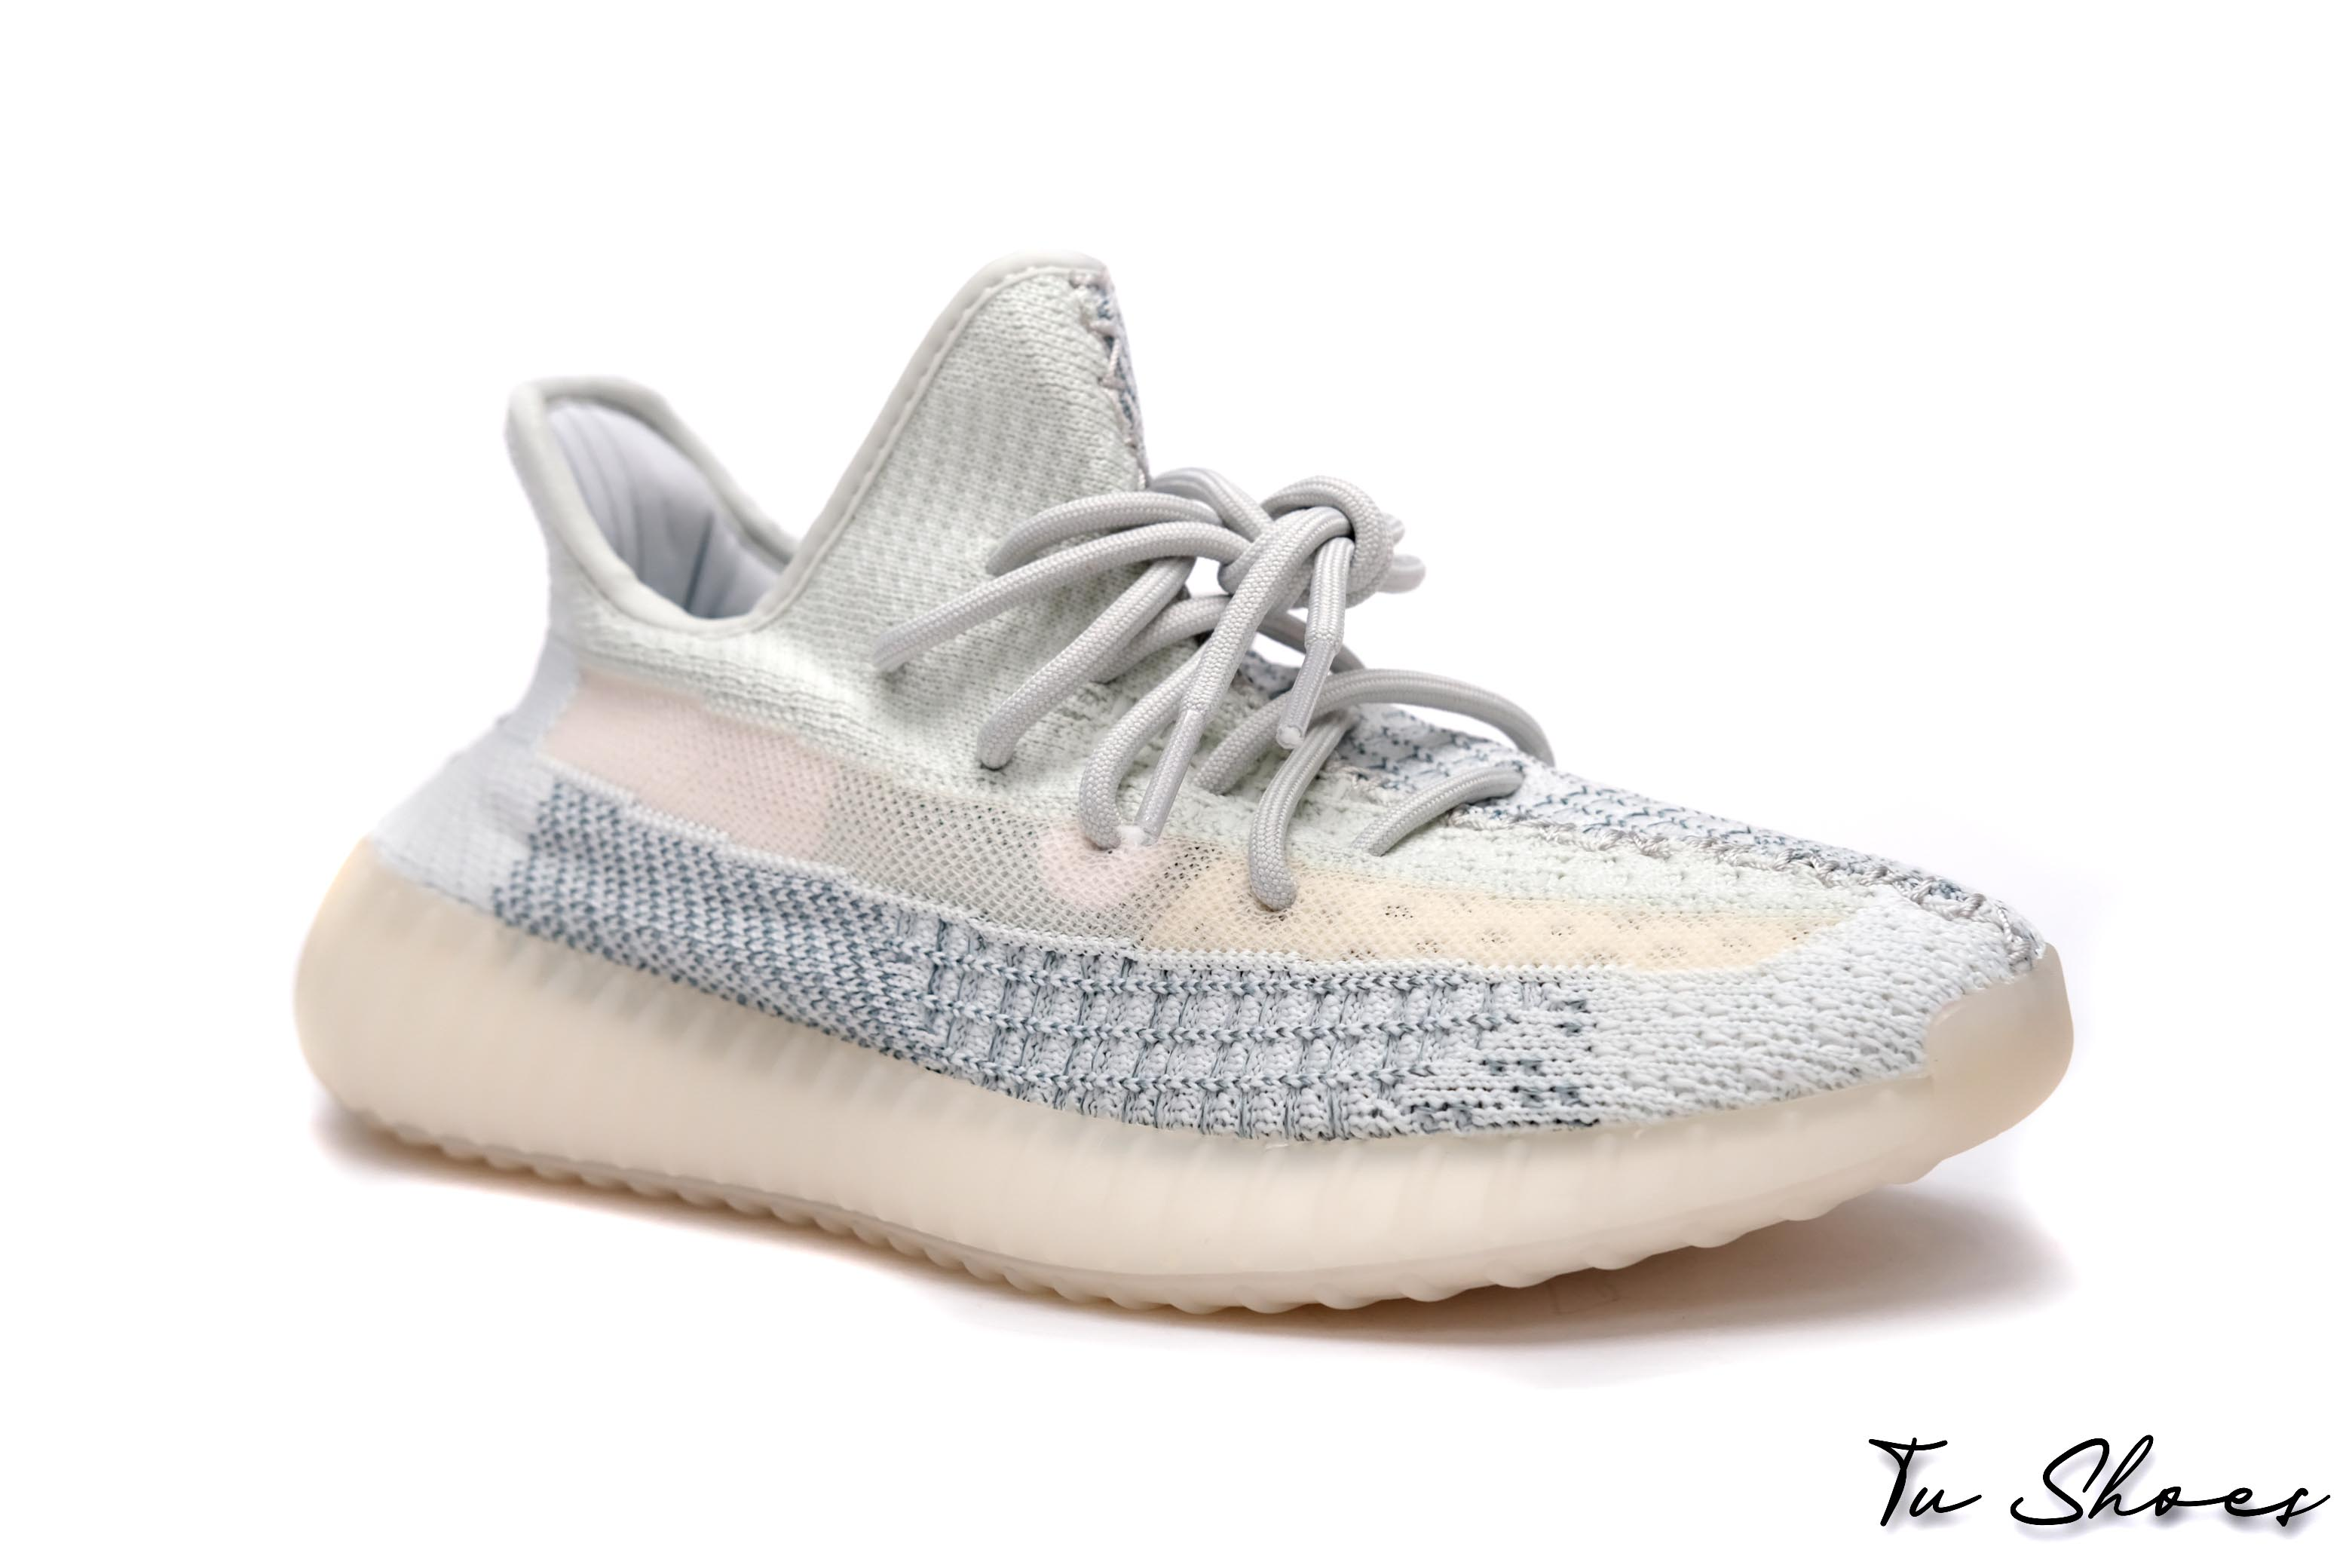 yeezy-350-v2-cloud-white-reflective-1-1